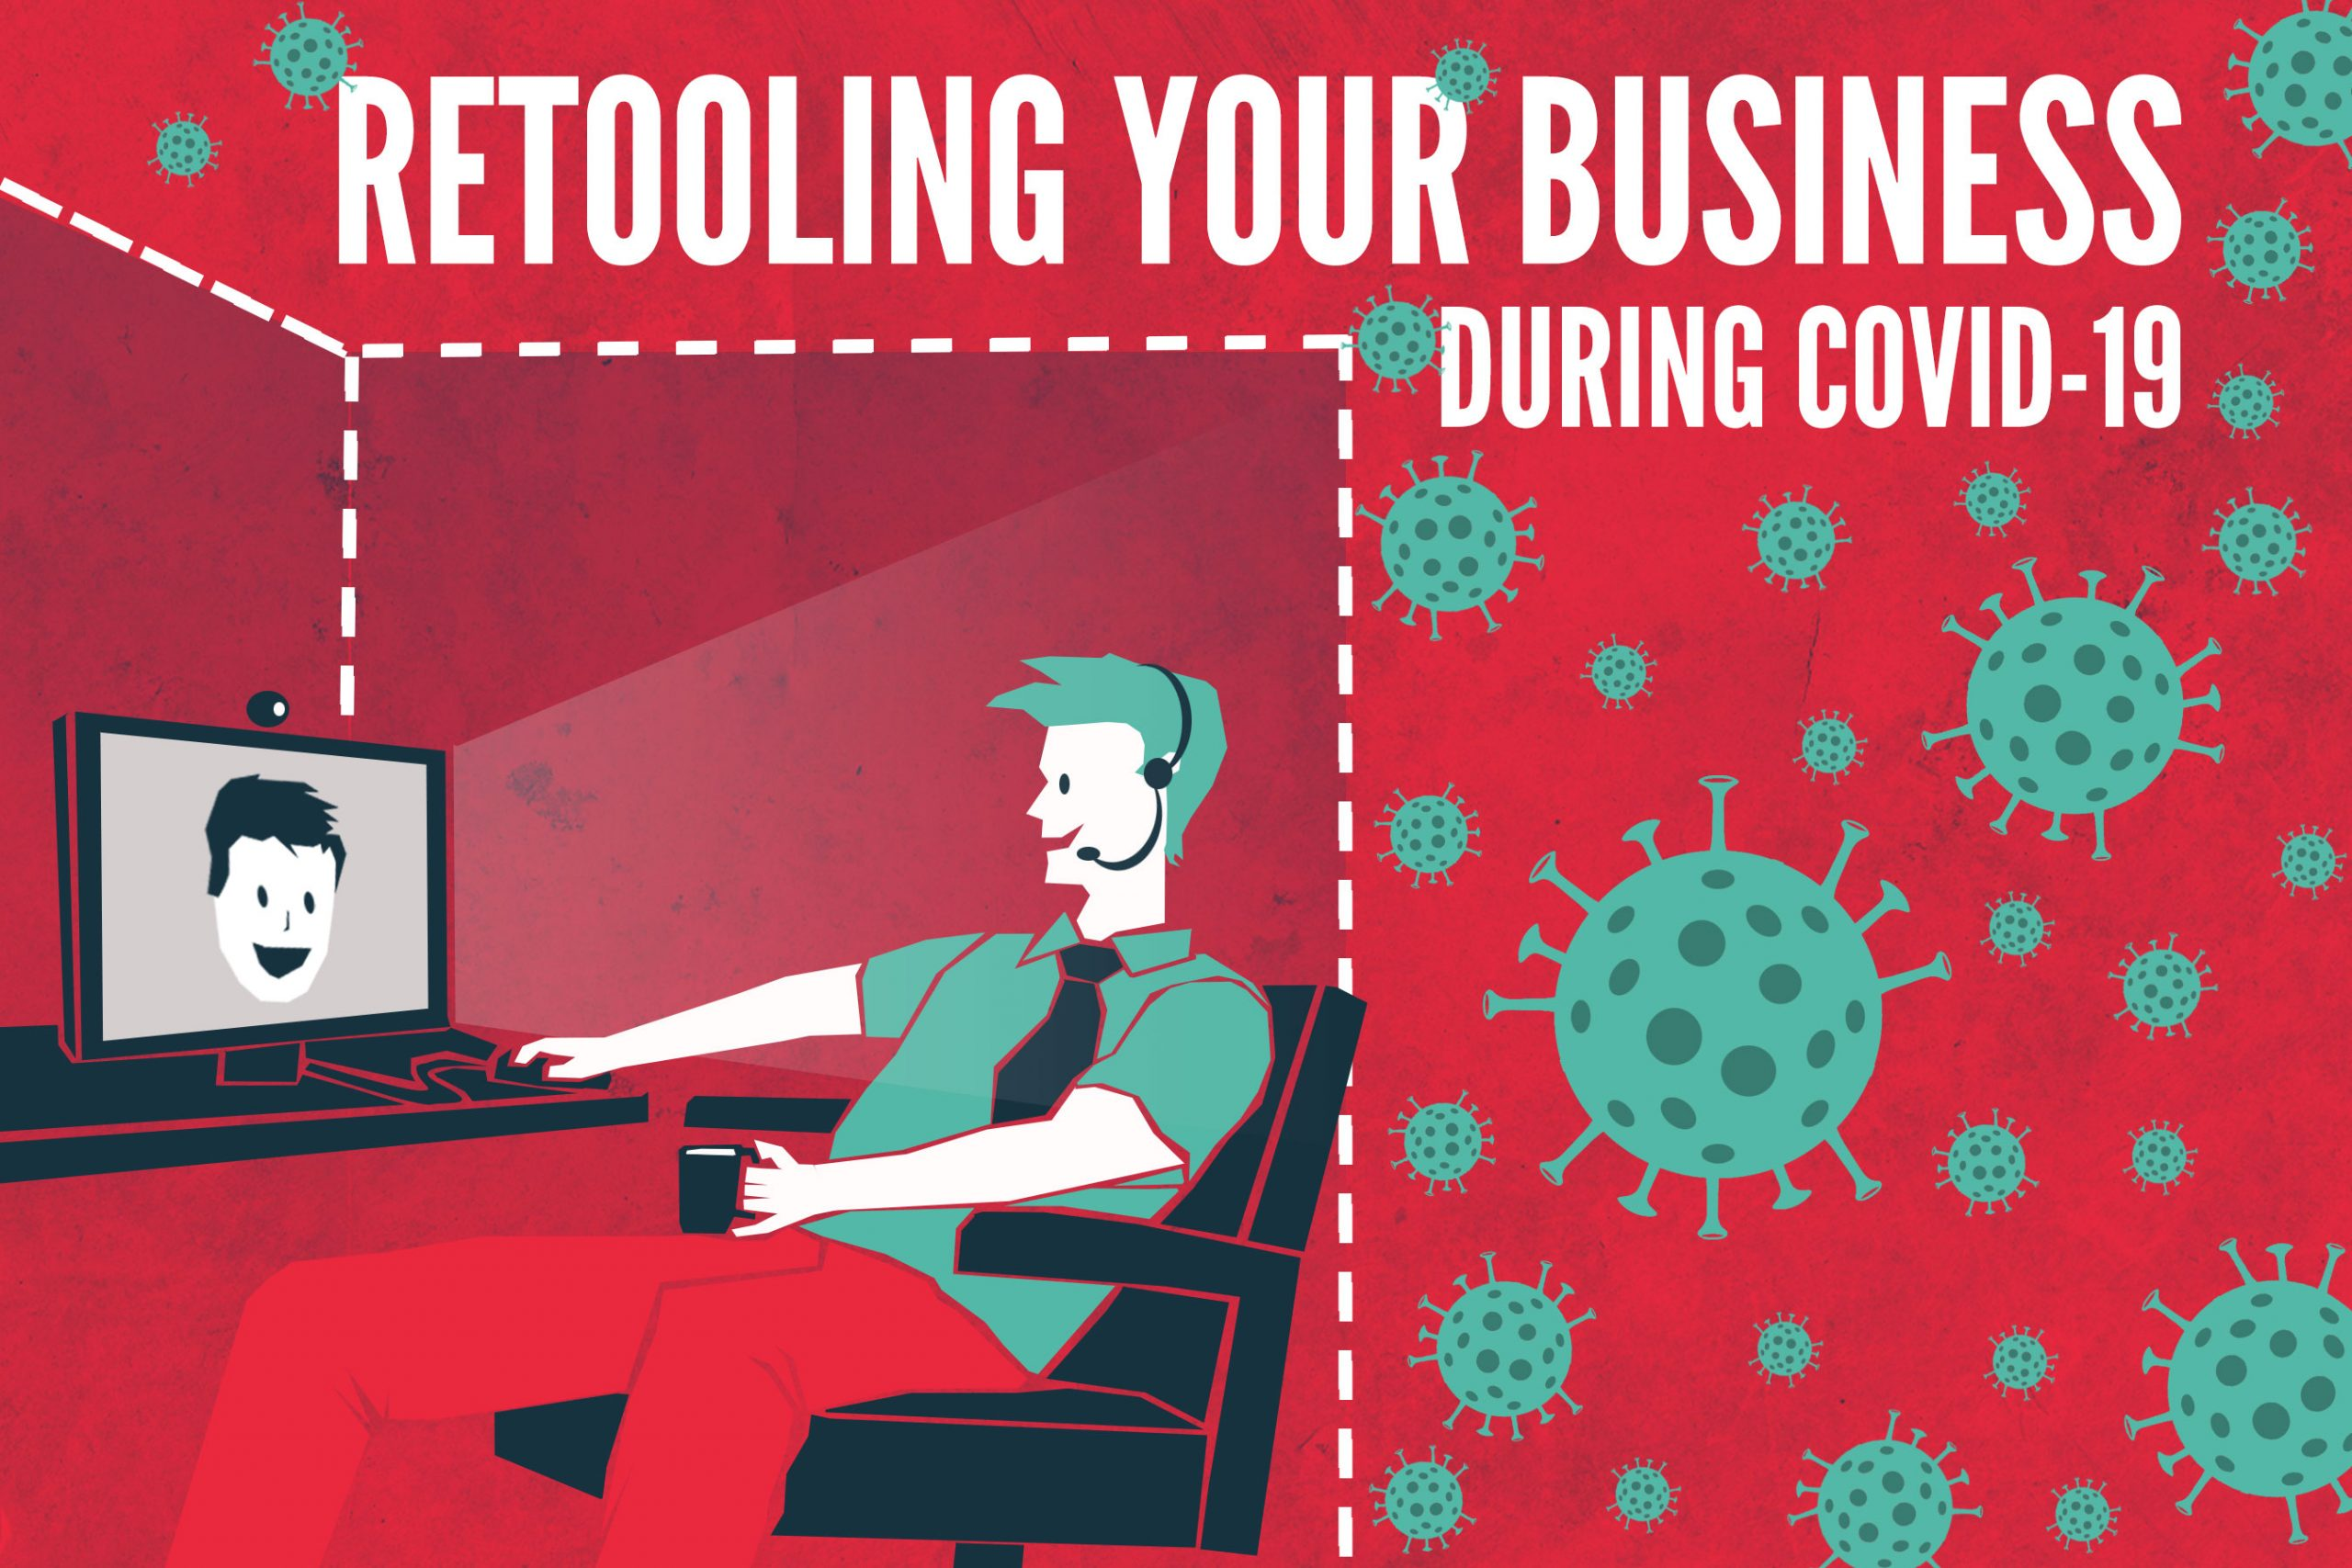 Retooling your Business During COVID-19